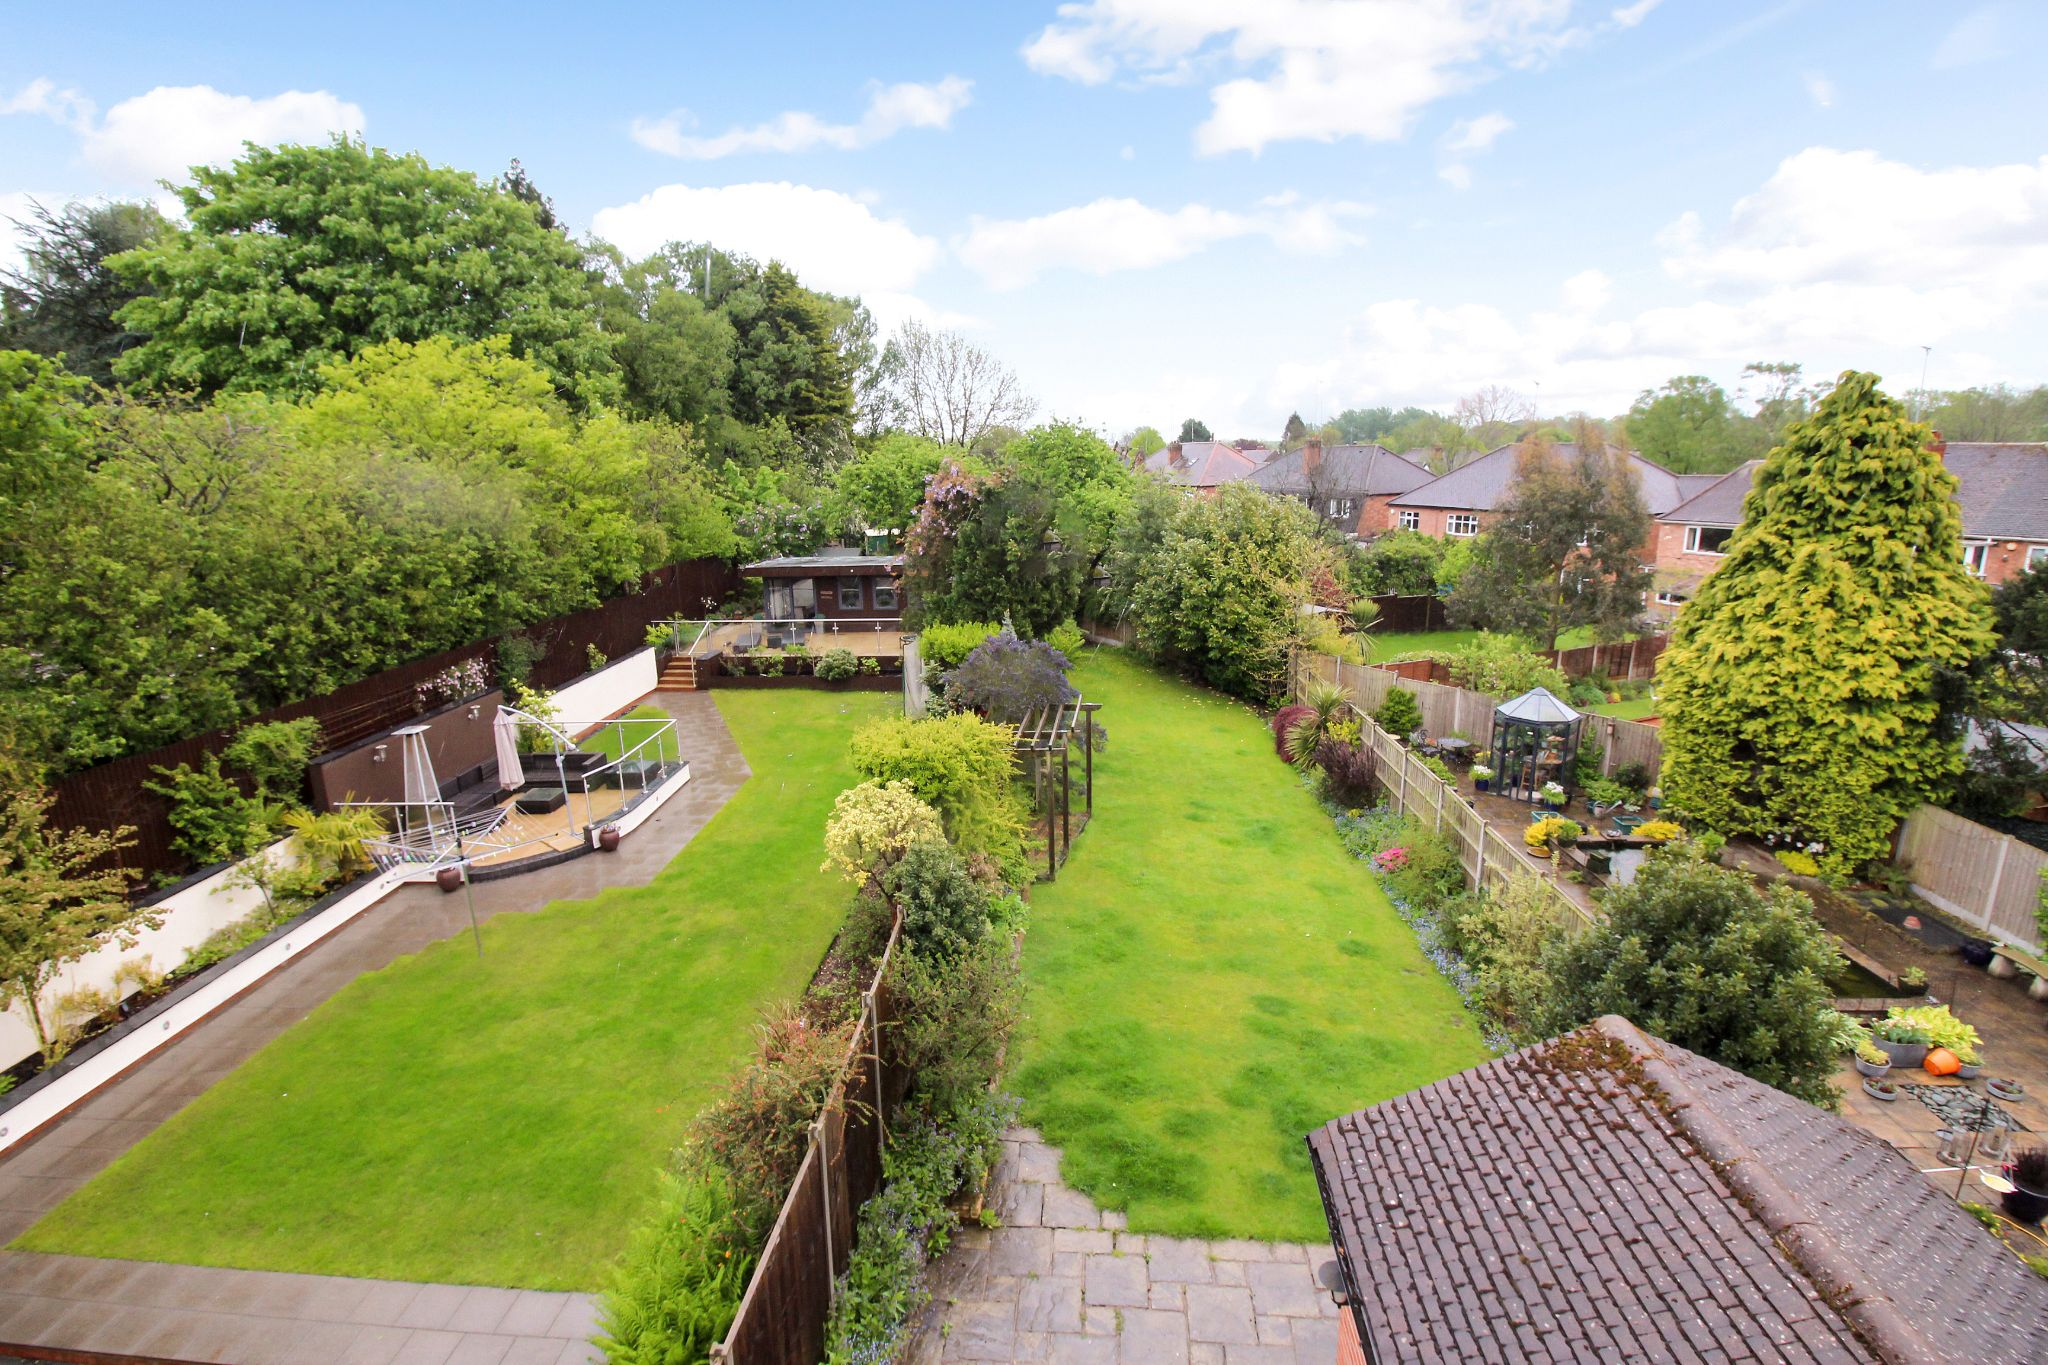 4 bedroom semi-detached house SSTC in Solihull - Photograph 14.